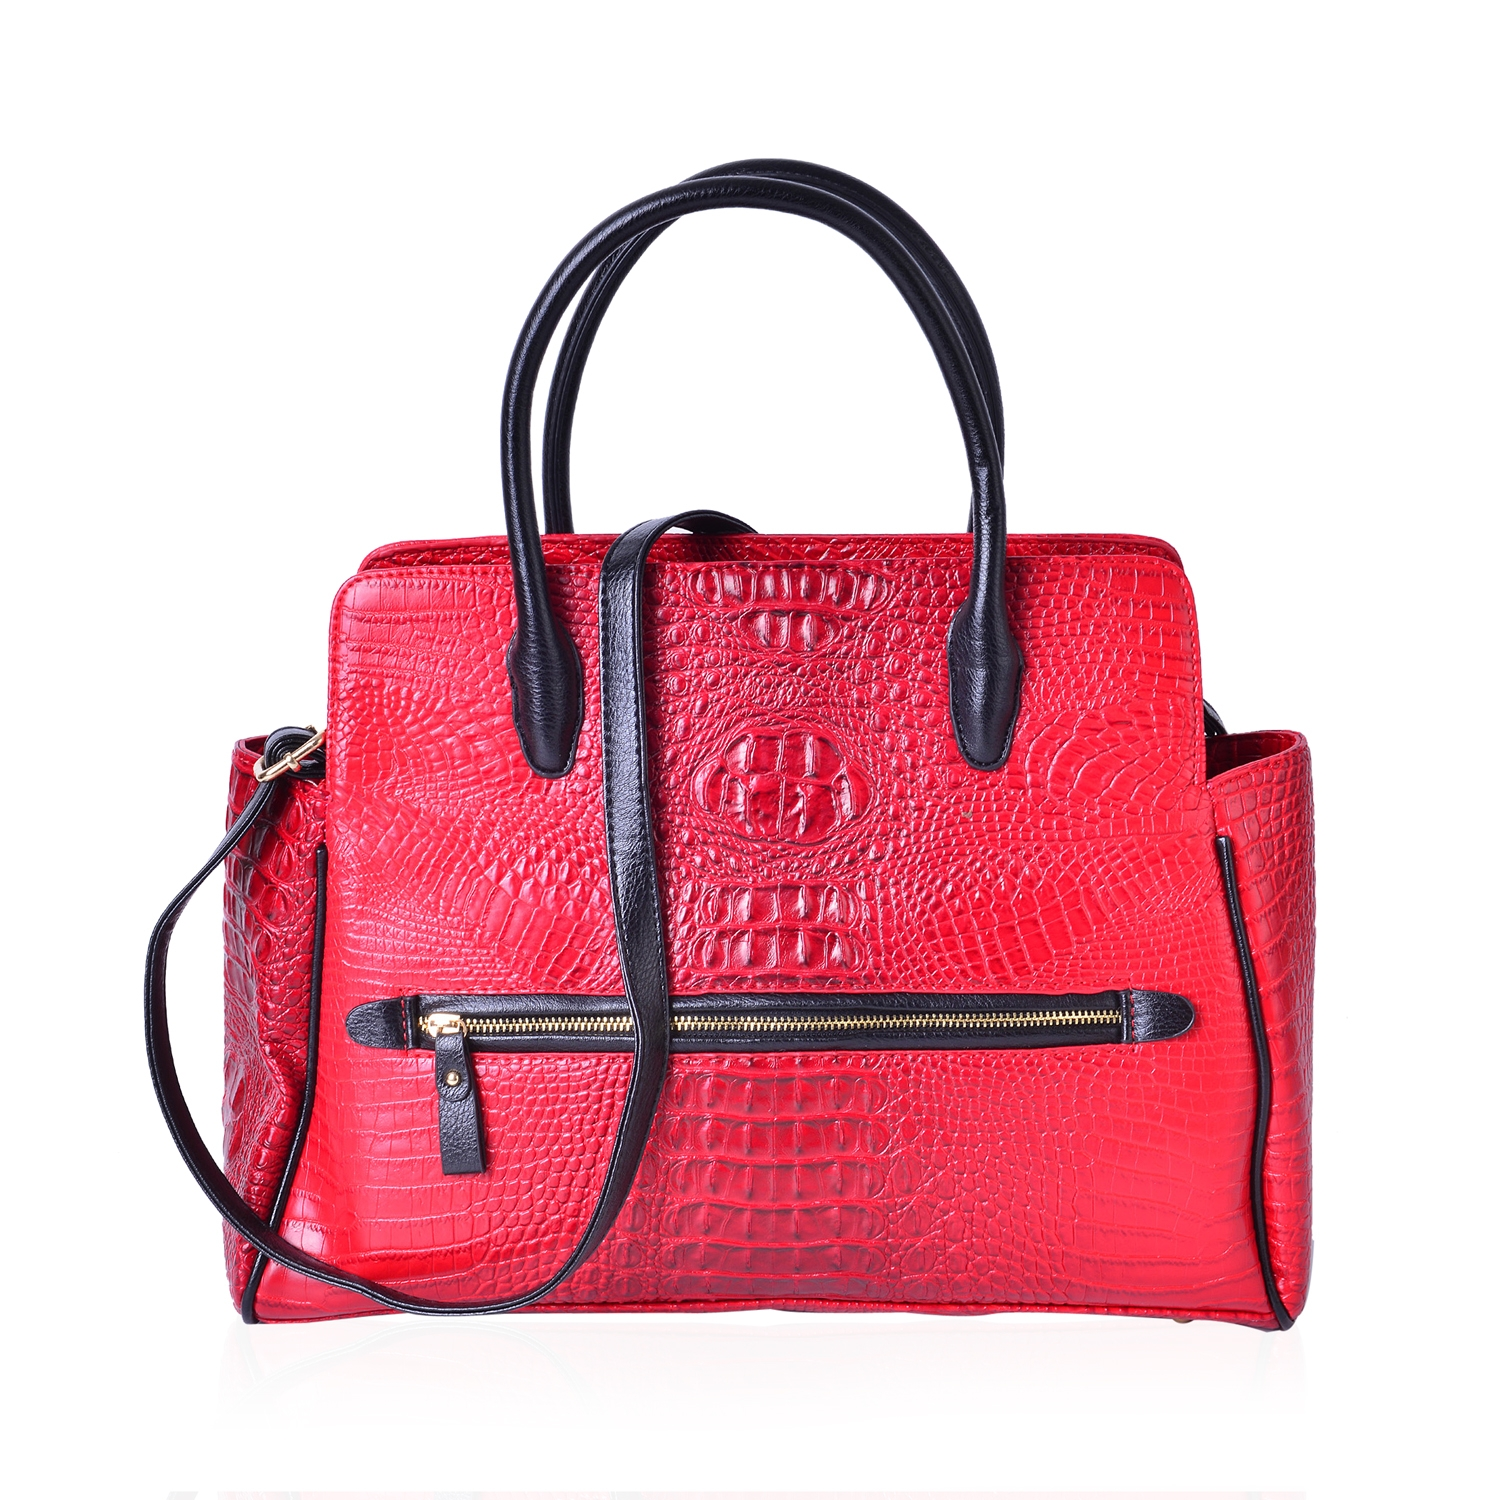 ce8913a315 Red and Black Crocodile Embossed Vegan Leather Tote Bag with Removable  Strap and Standing Studs (16.5x5x13 in)